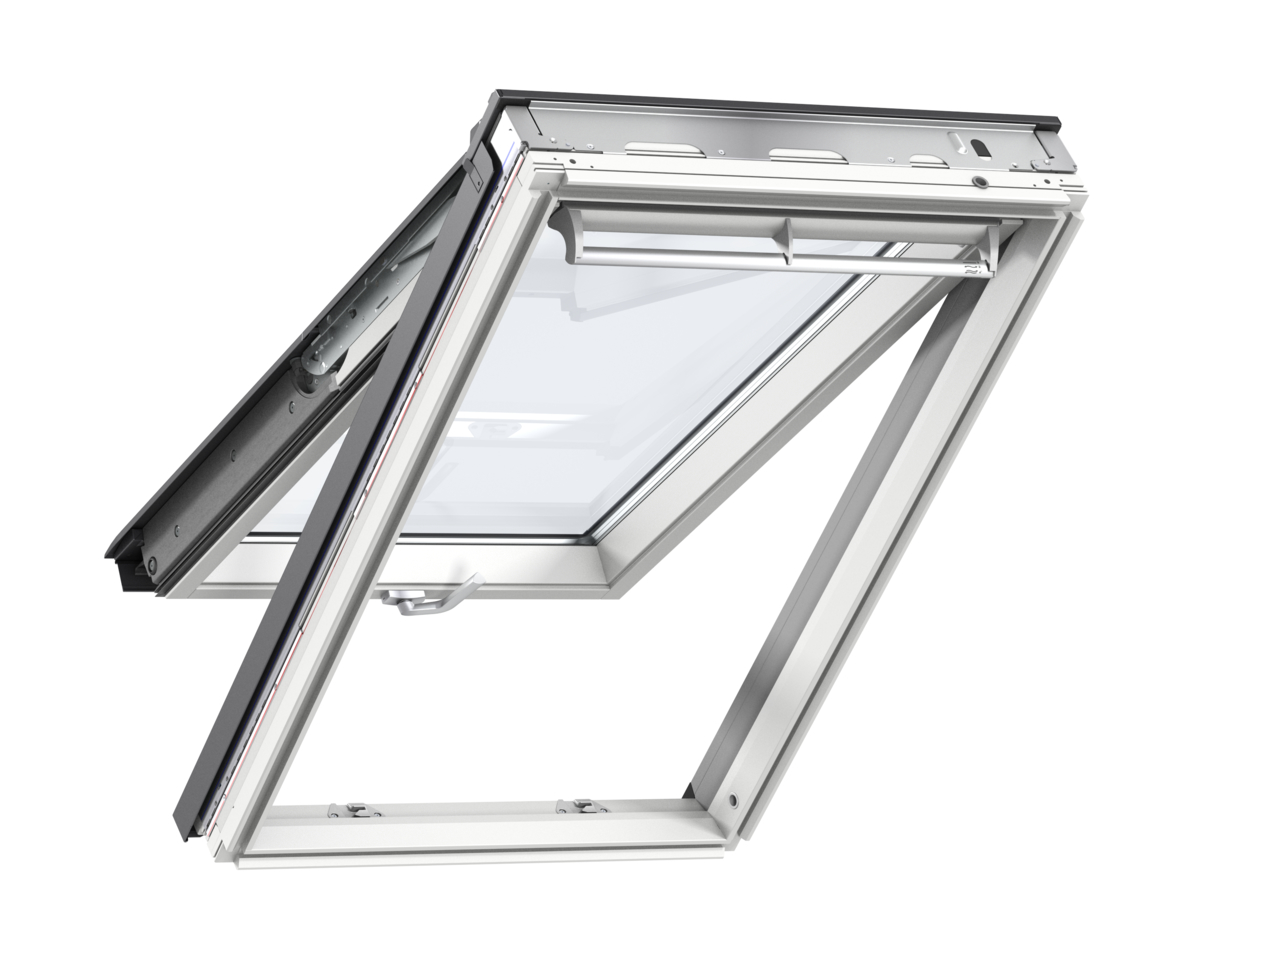 Velux GPL MK08 780 x 1400mm Top Hung 66Pane Roof Window - White Painted